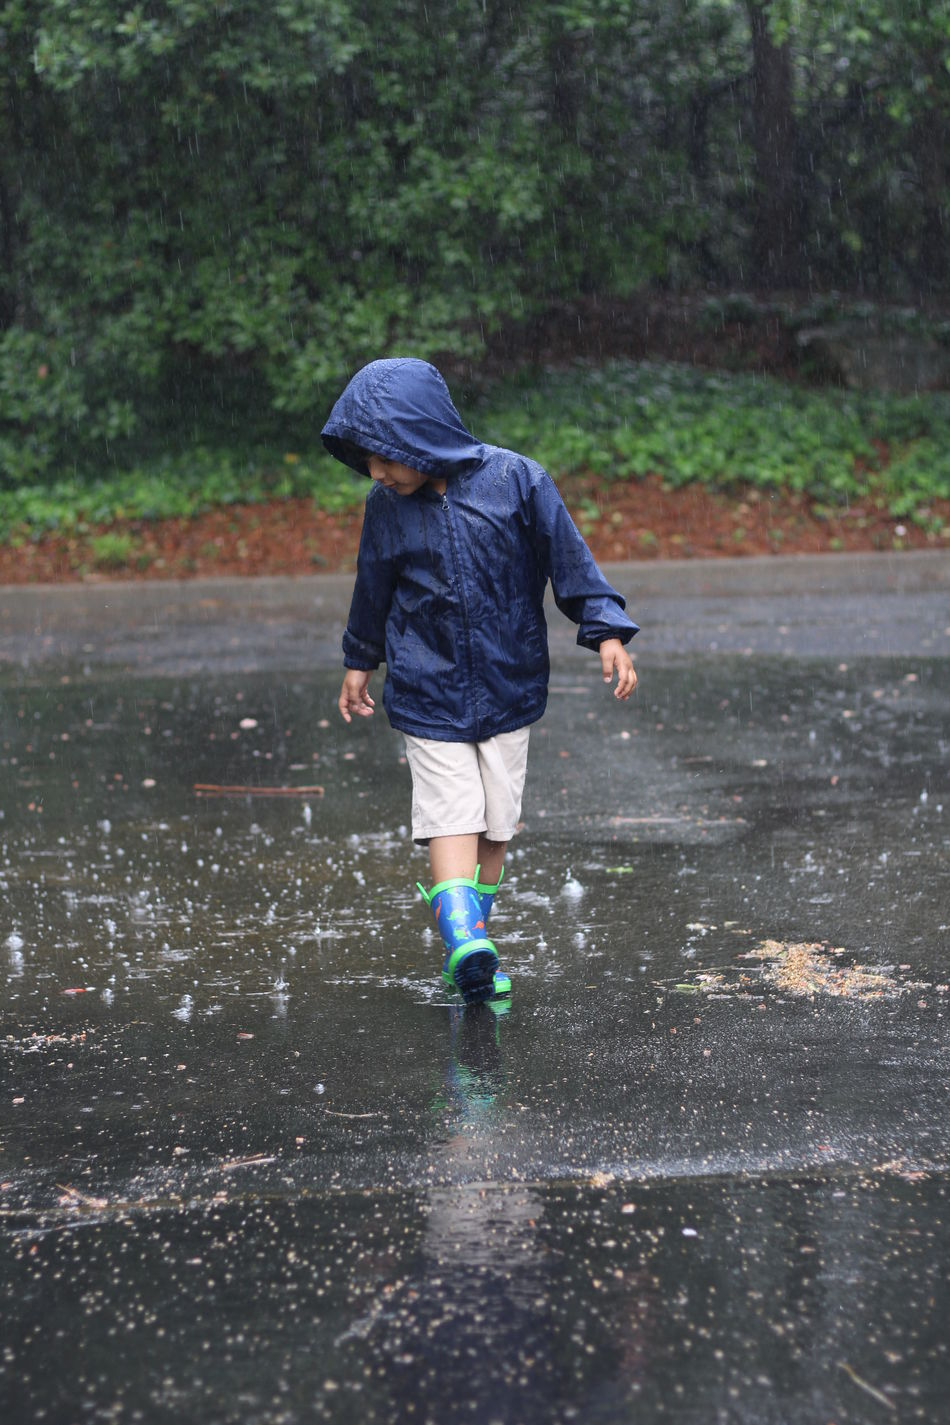 Casual Clothing Childhood Day Full Length Jumping Motion Nature One Person Outdoors People Rain Real People Rear View Tree Walking Warm Clothing Water Wet